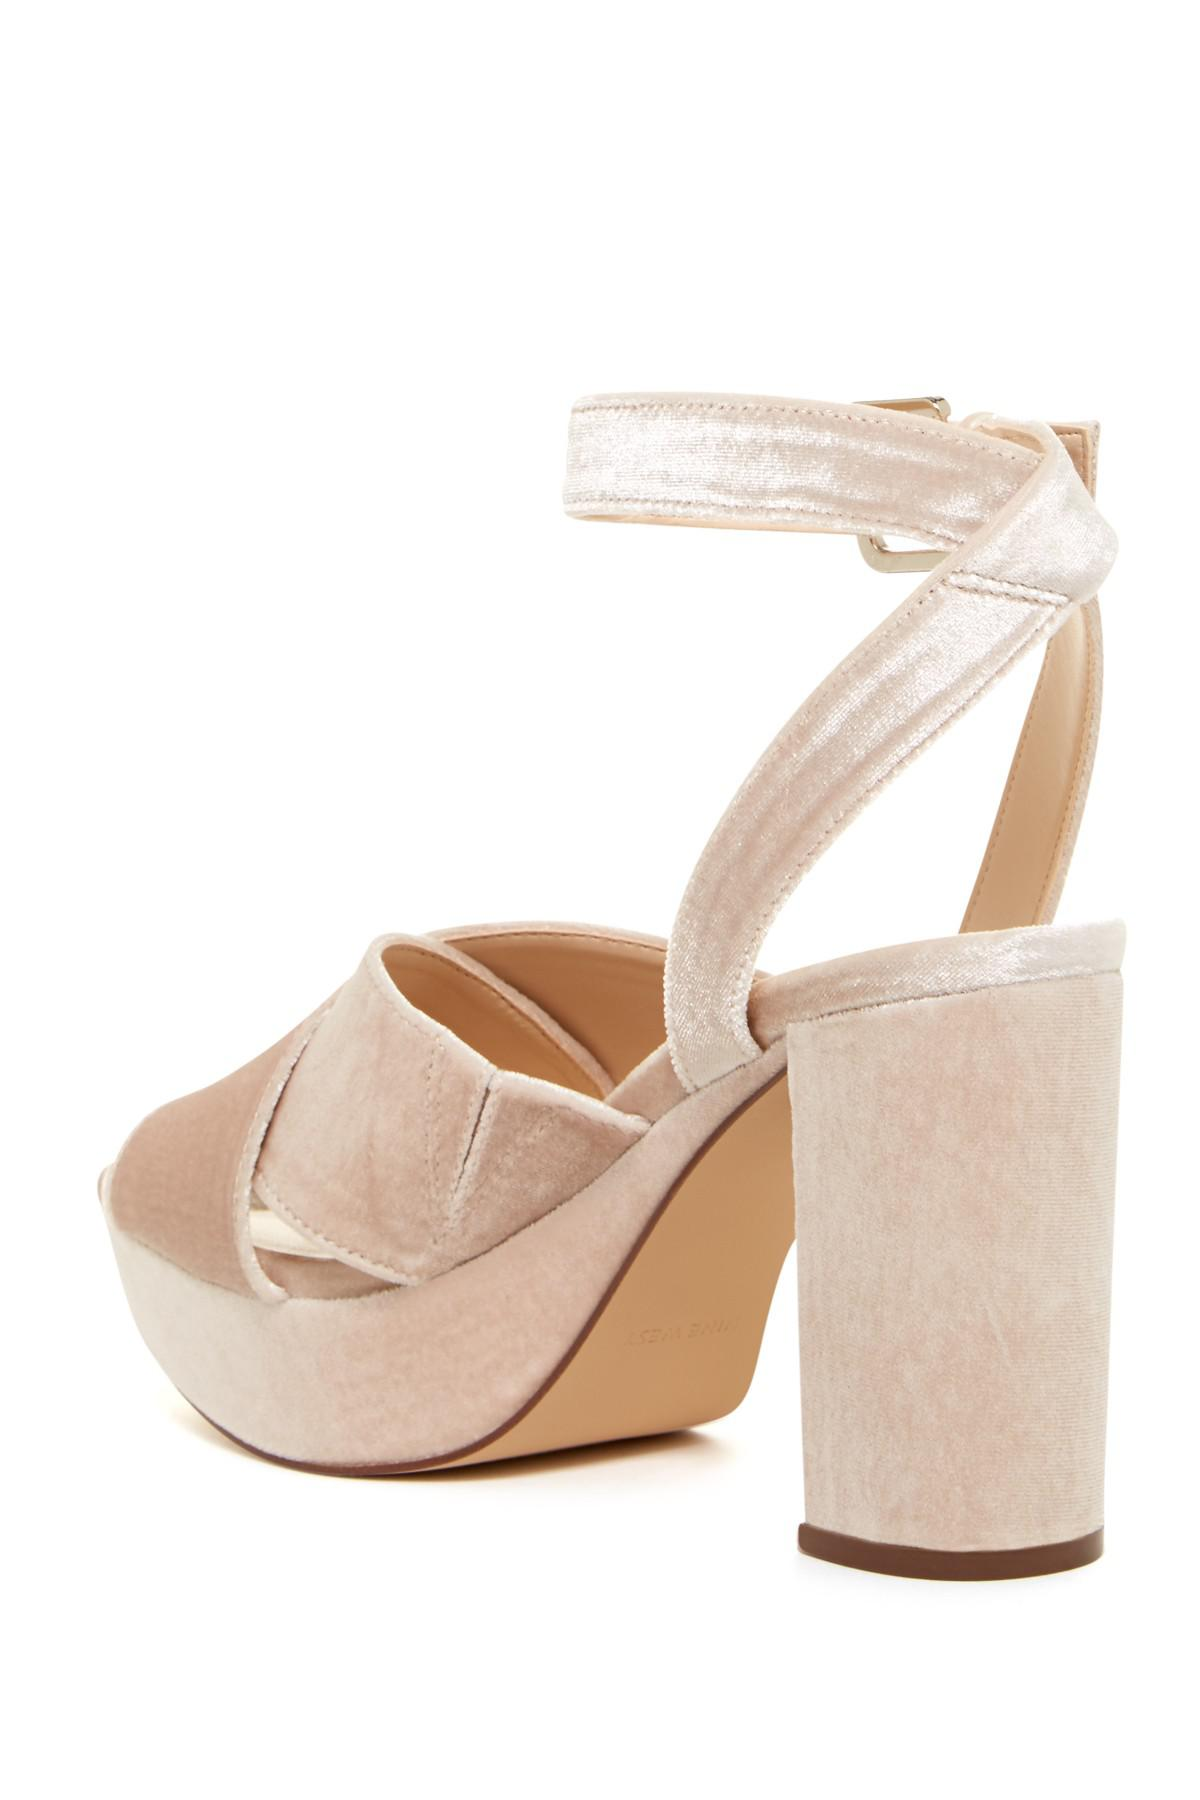 Nine West Mcnomee m6GtcrM